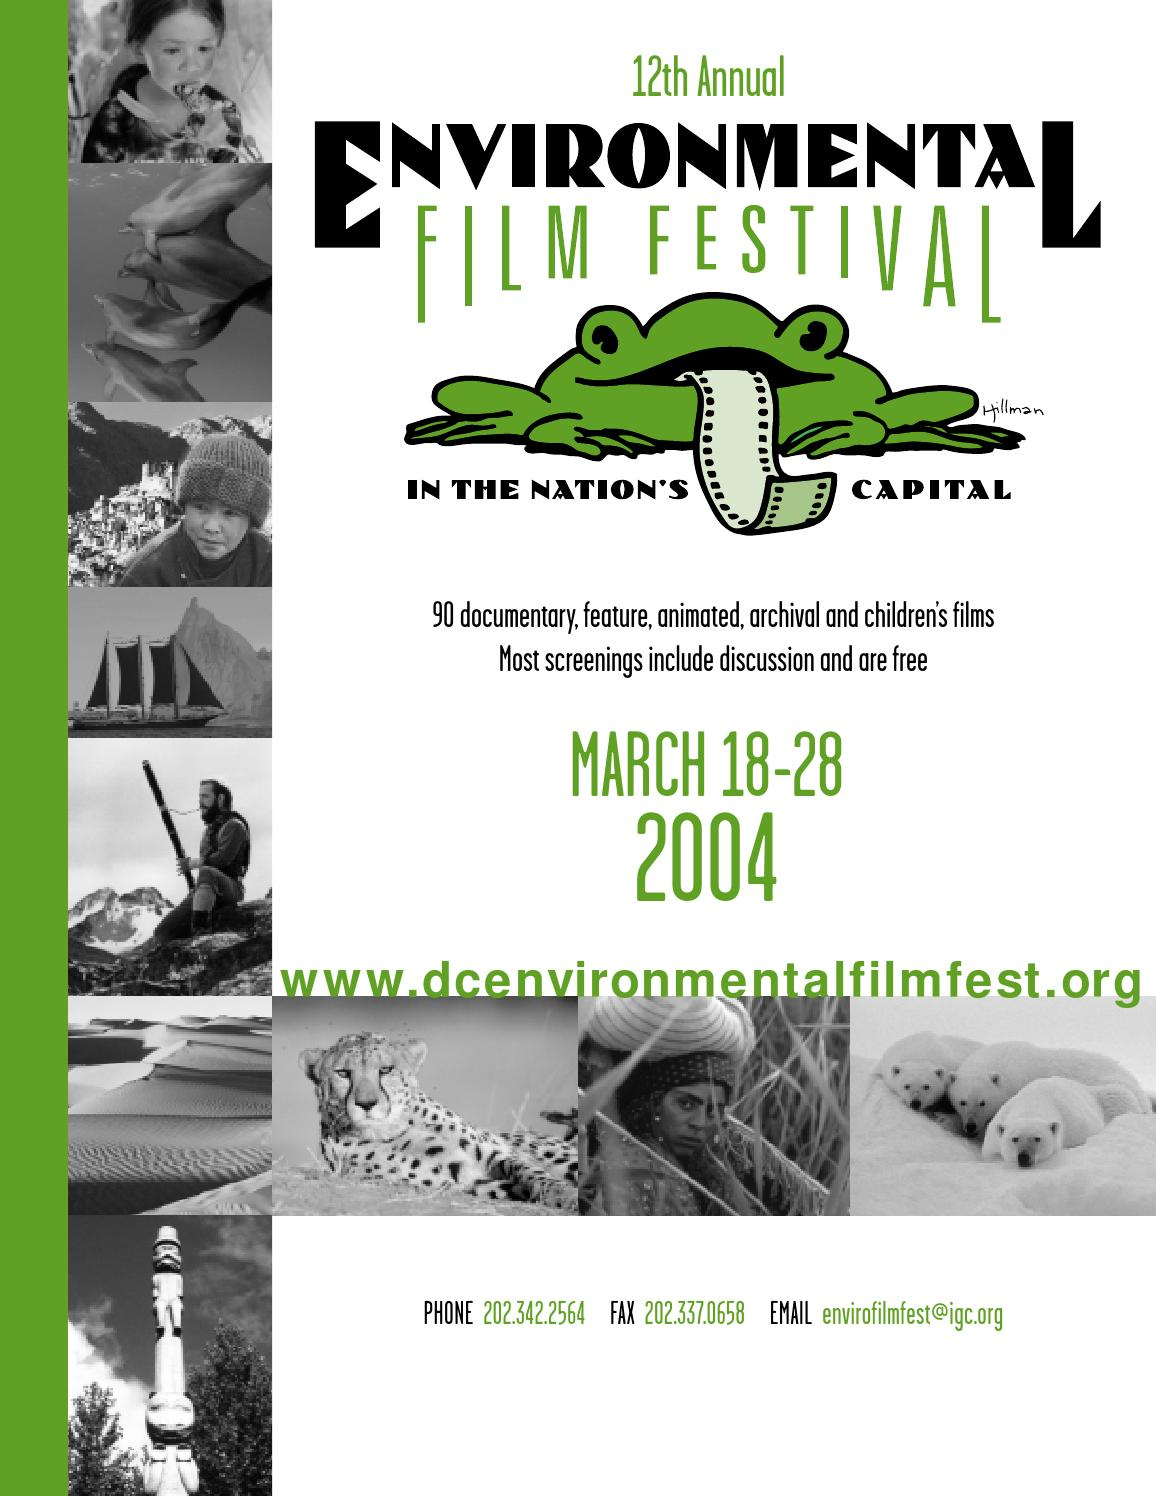 Prix Maison Igc Forum 2004 Printed Program By Environmental Film Festival Issuu